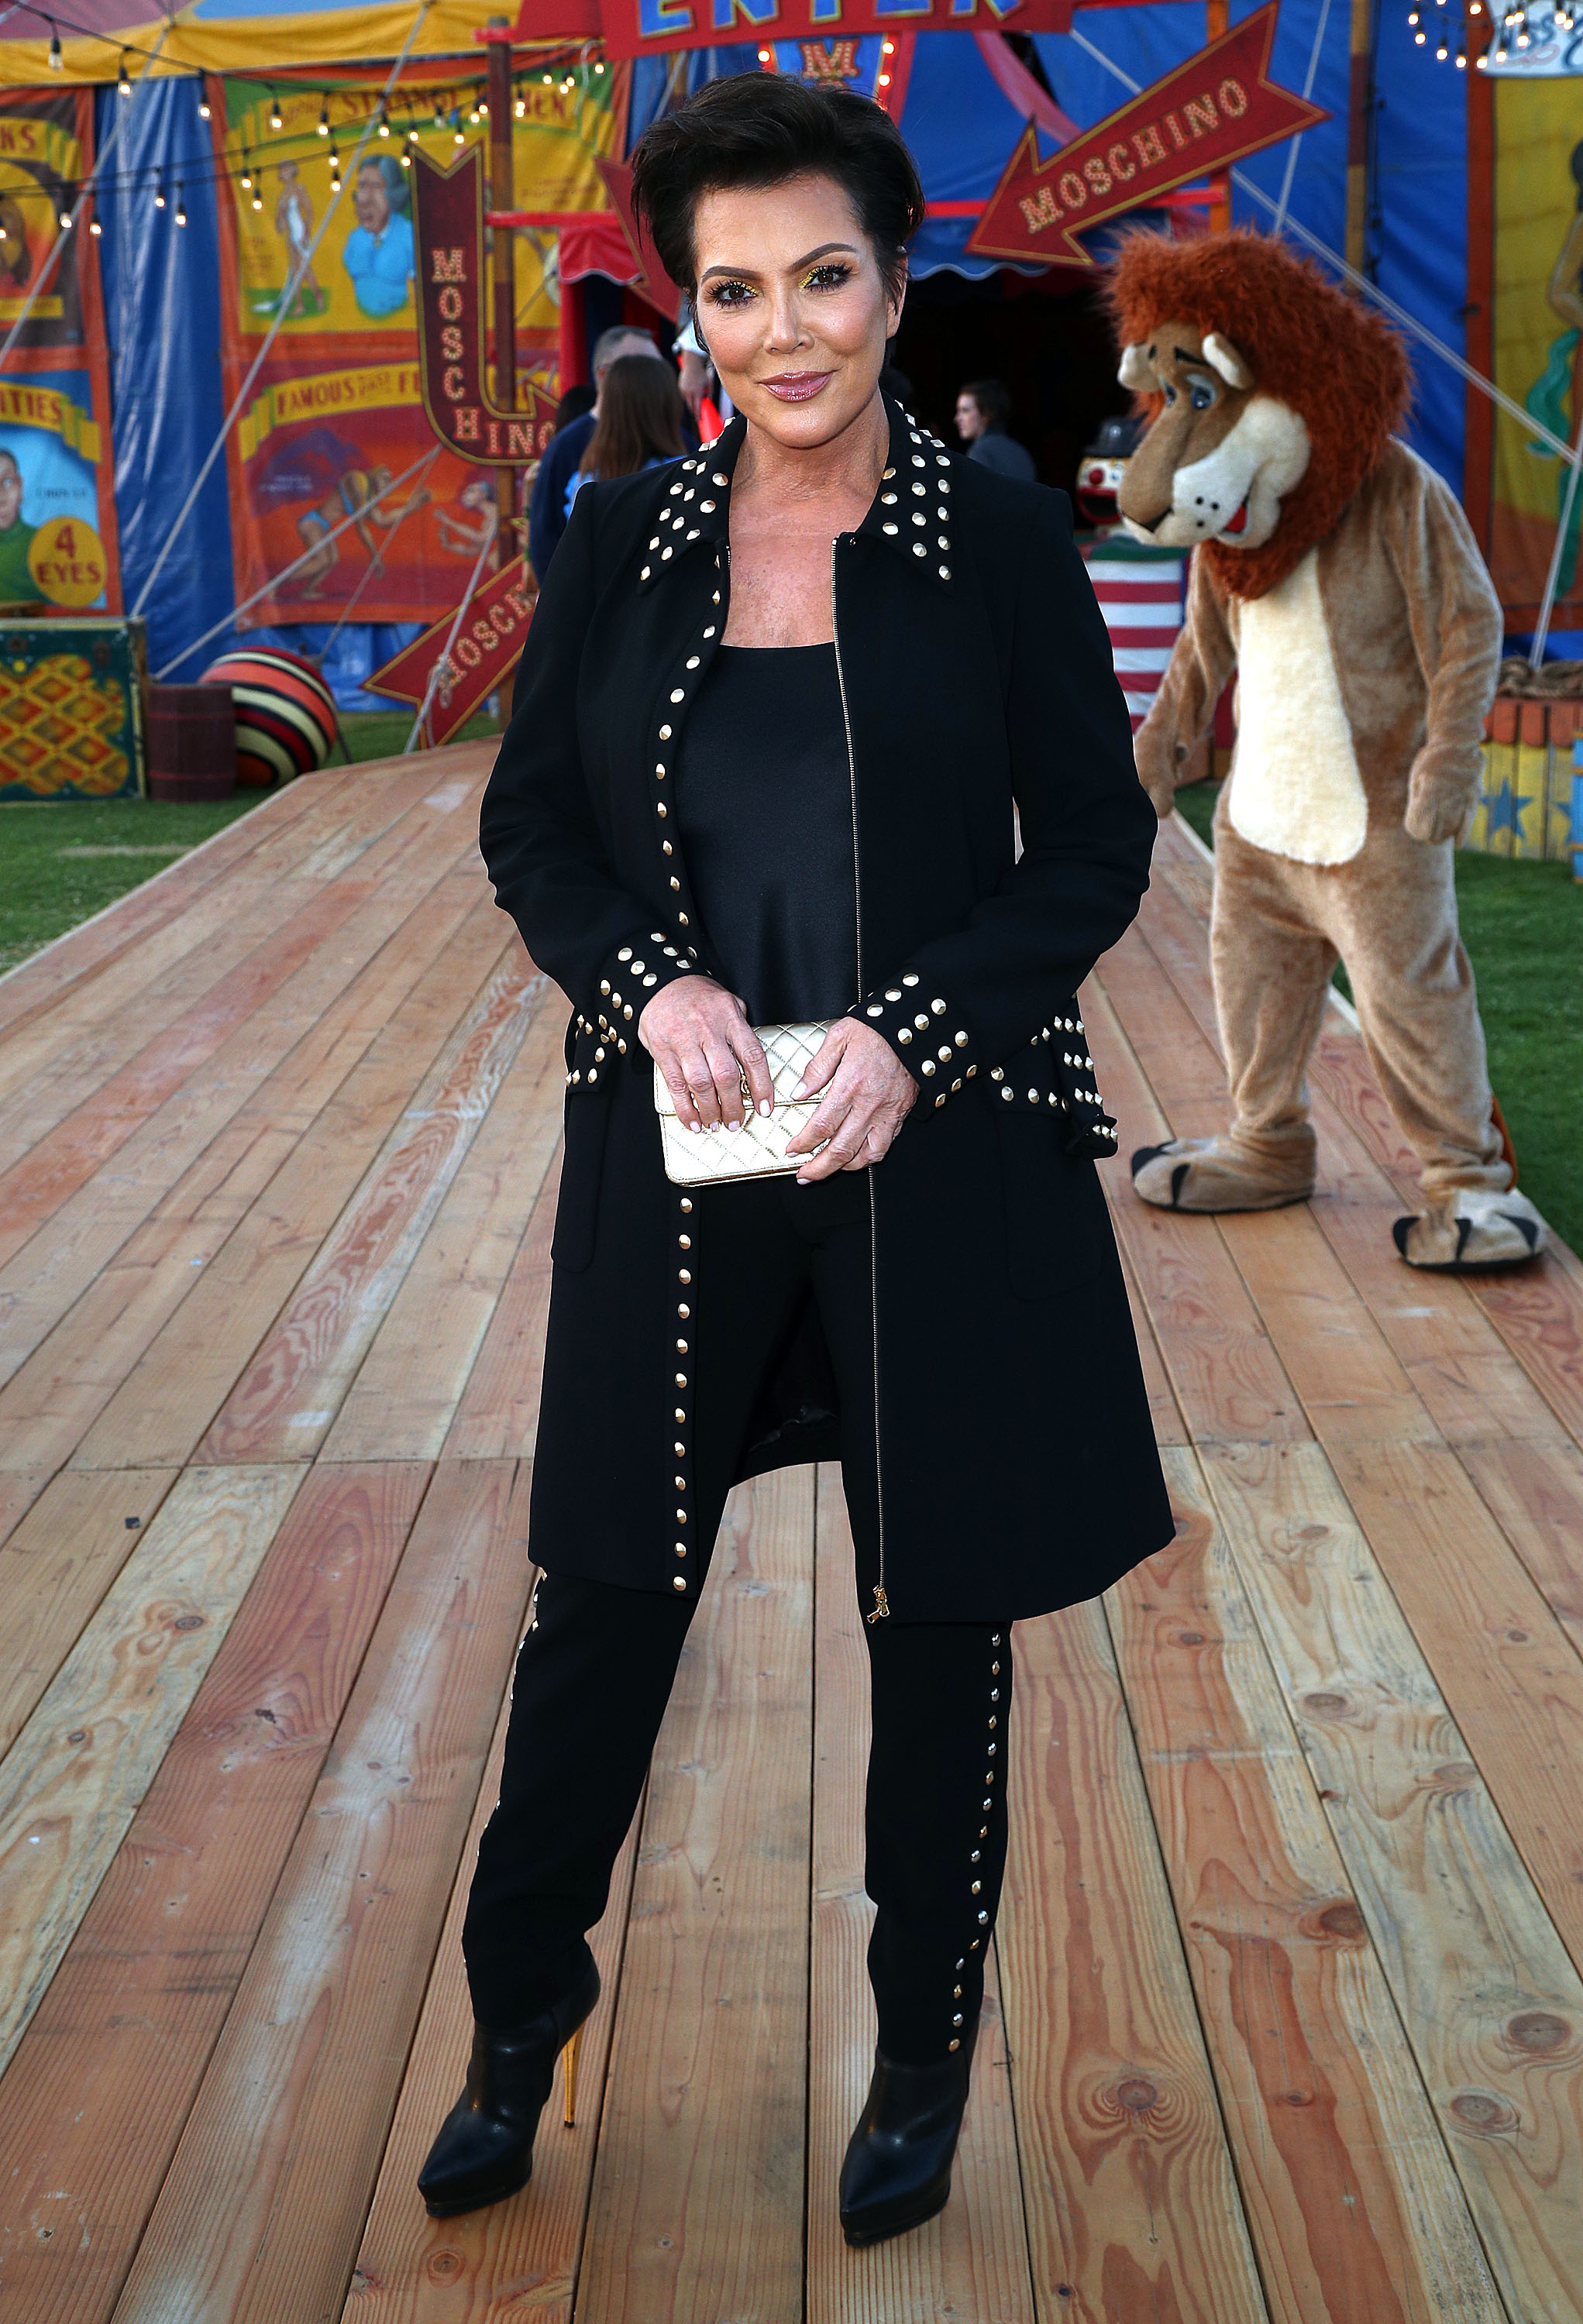 Kris Jenner attends Moschino Spring/Summer 19 Menswear and Women's Resort Collection at the Los Angeles Equestrian Center on June 8, 2018 in Burbank, Calif